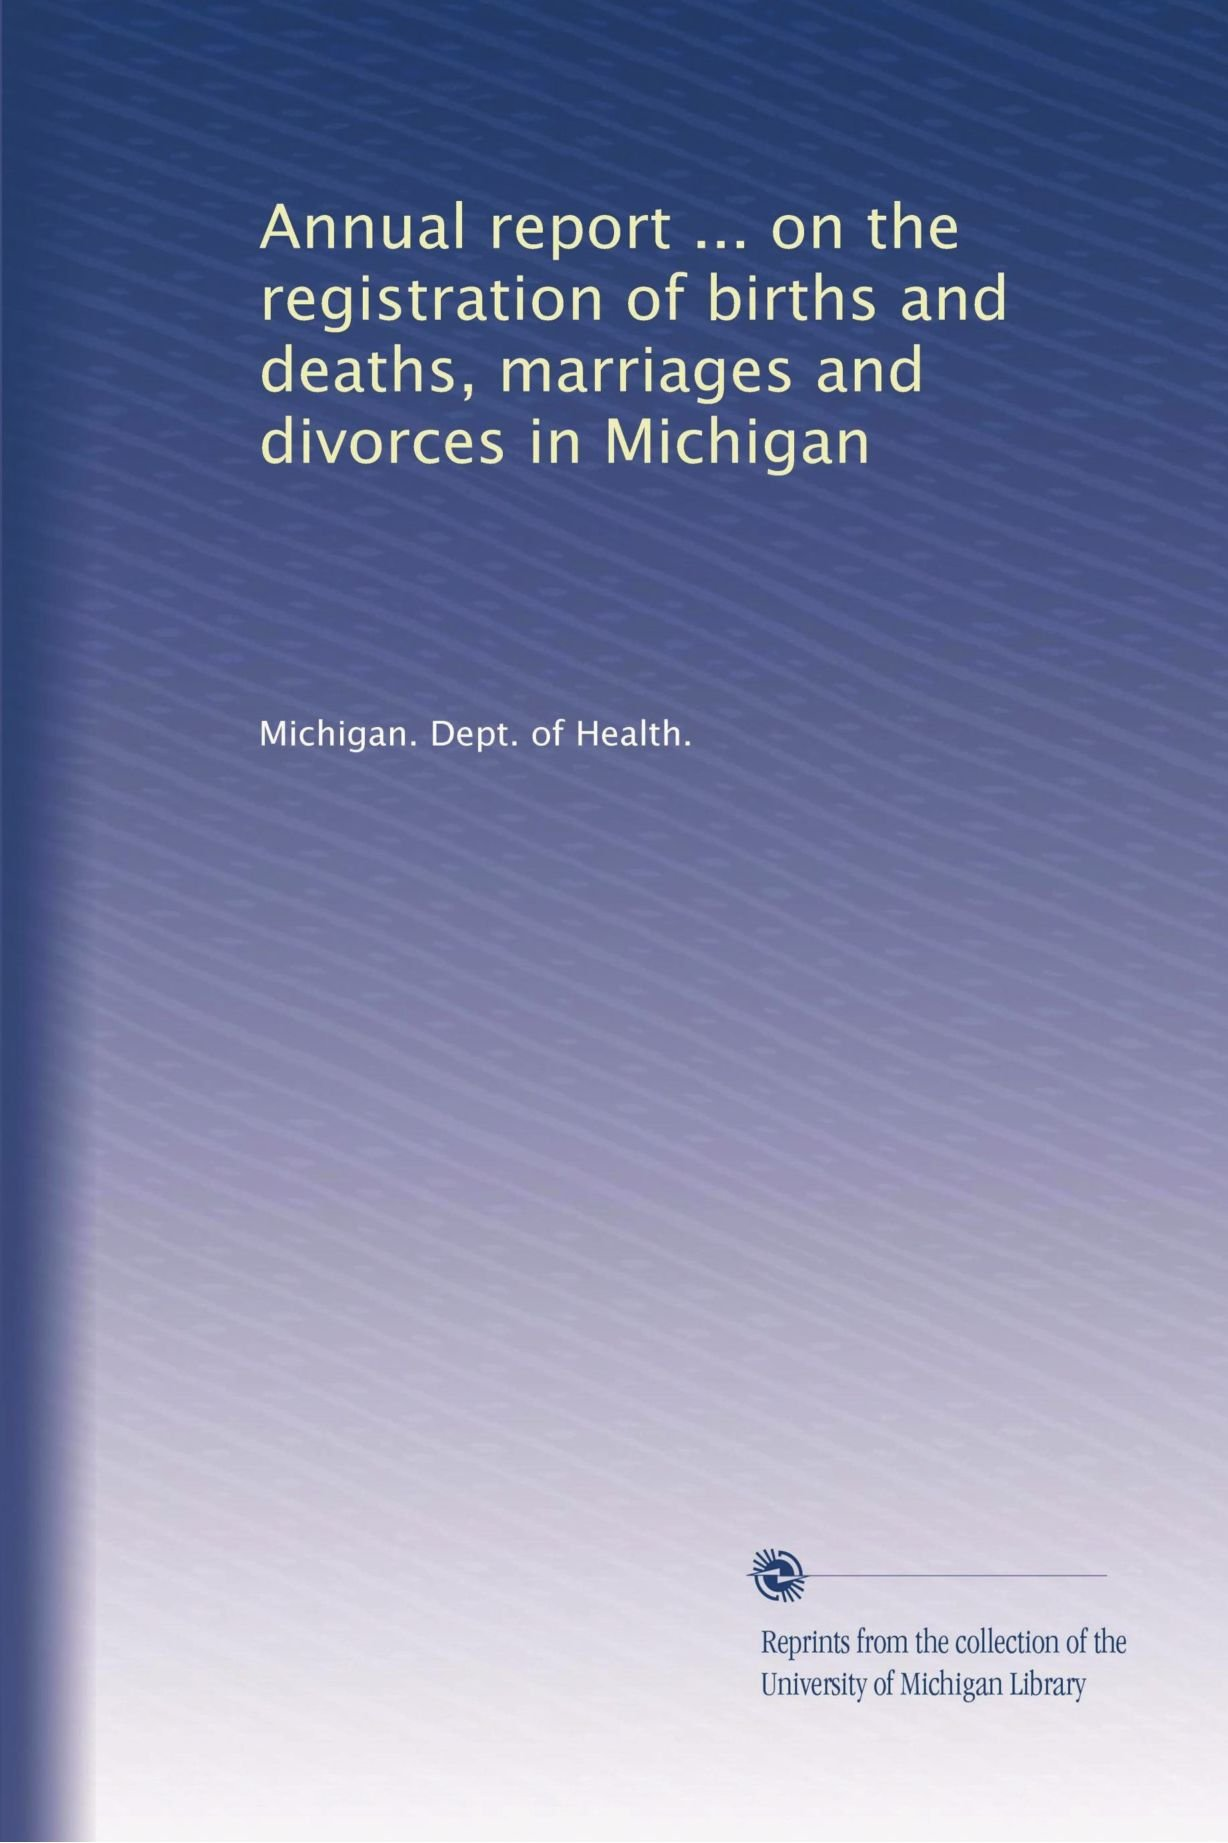 Annual report ... on the registration of births and deaths, marriages and divorces in Michigan (Volume 26) ebook